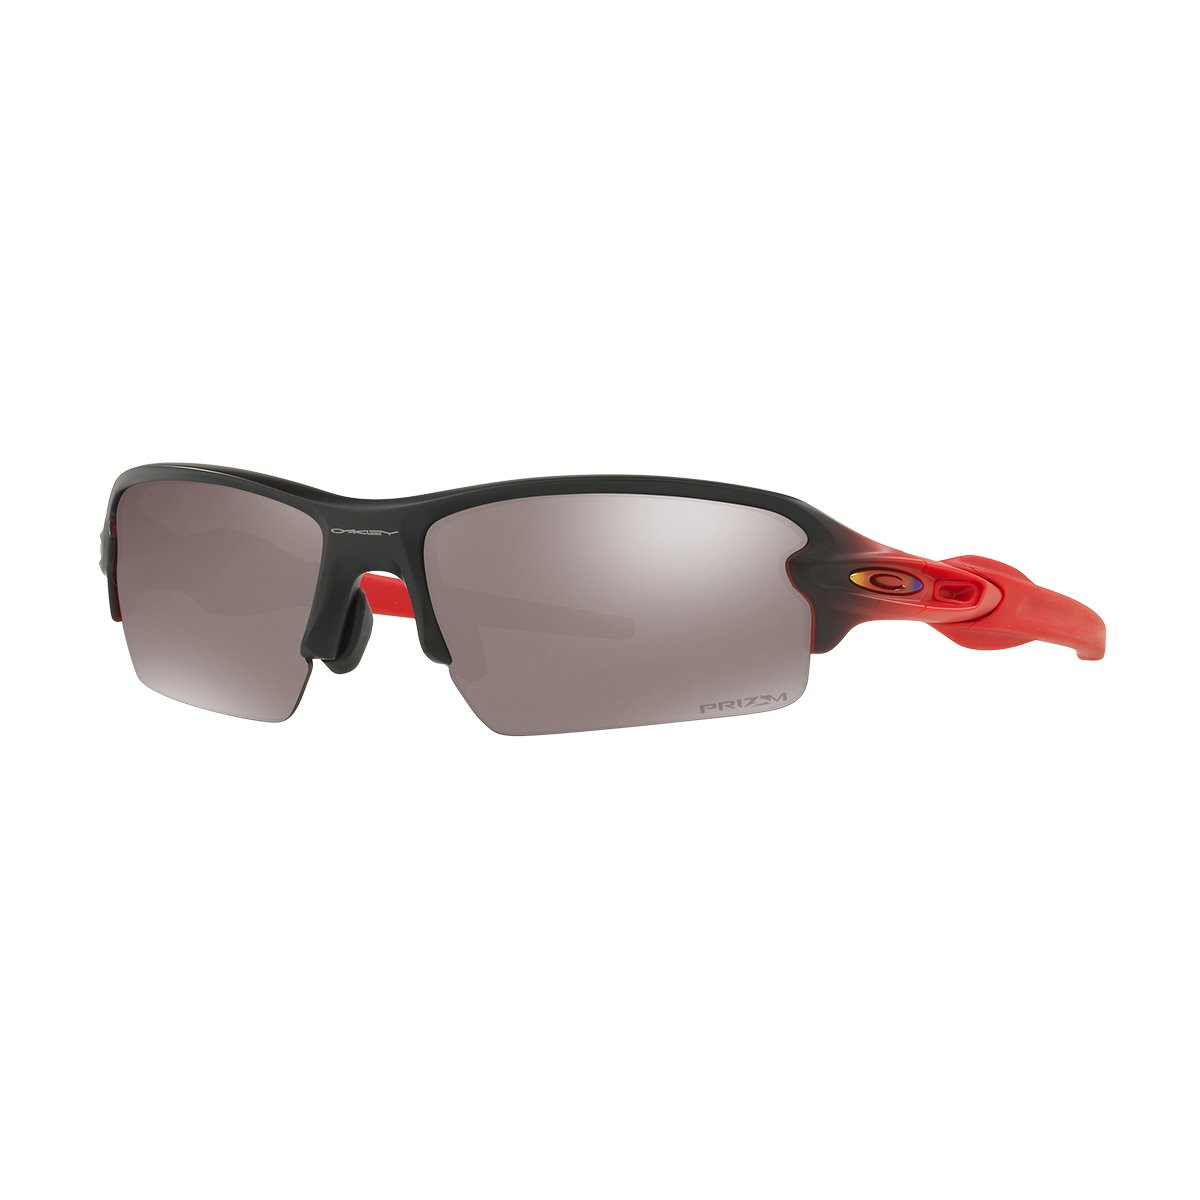 96768d738dc Oakley Flak 2.0 Ruby Fade Collection